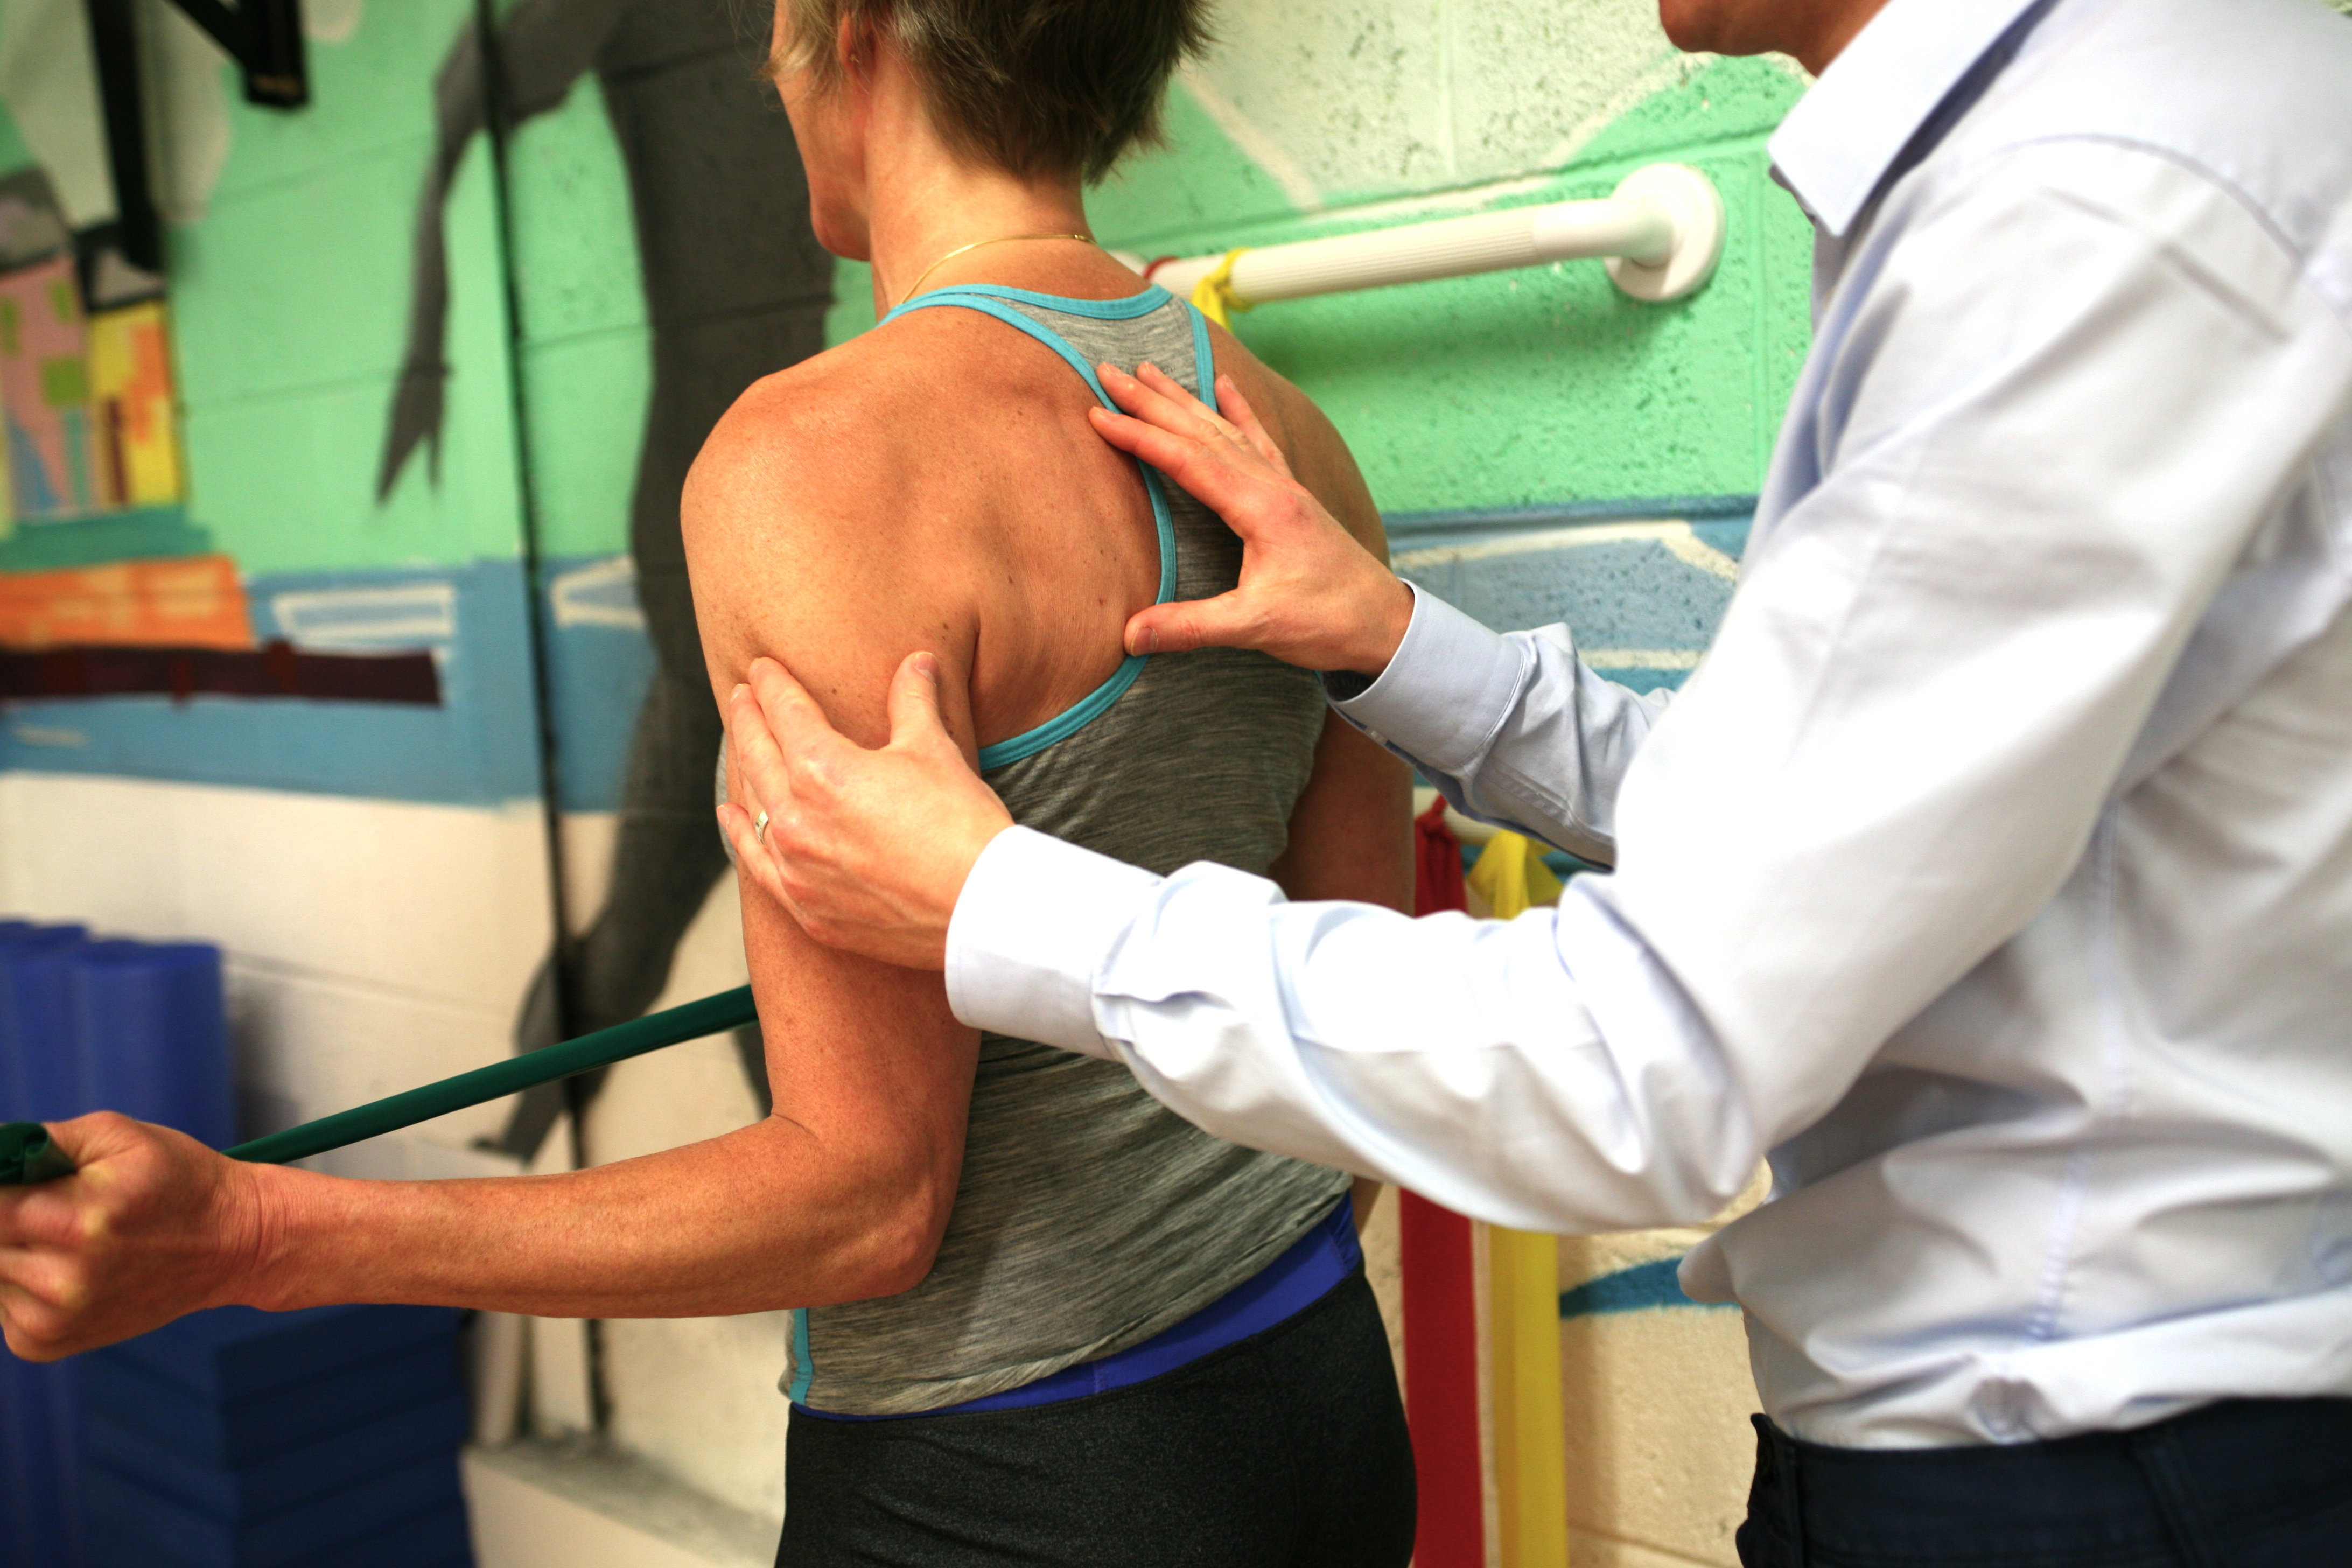 Exercise to strengthen the rotator cuff